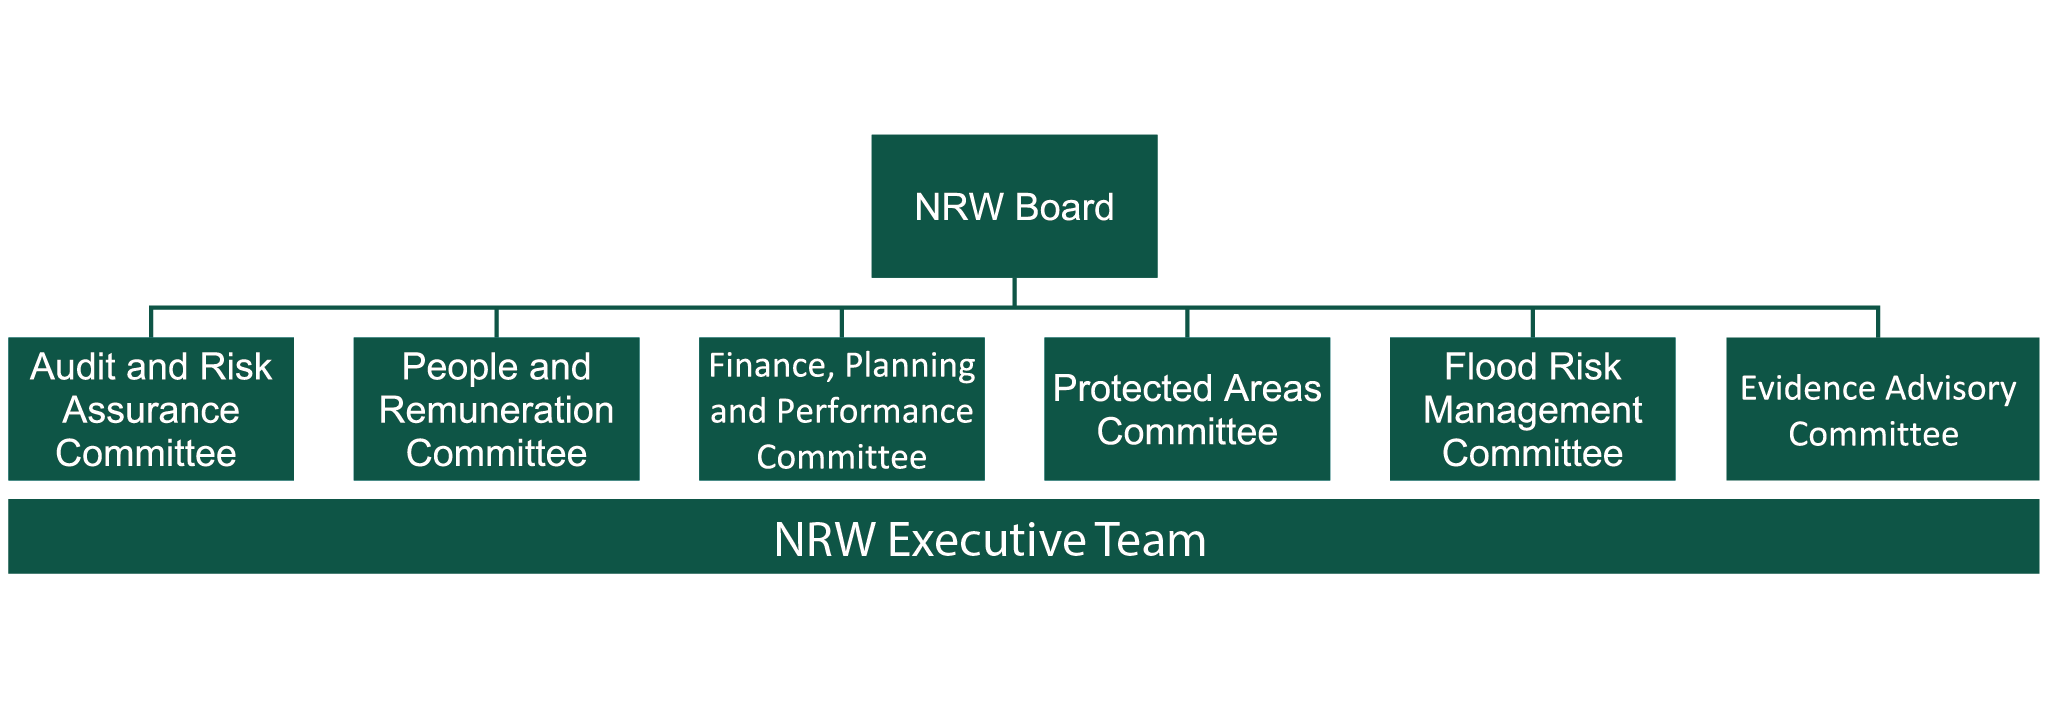 Our governance structure diagram. Details explained in surrounding text.